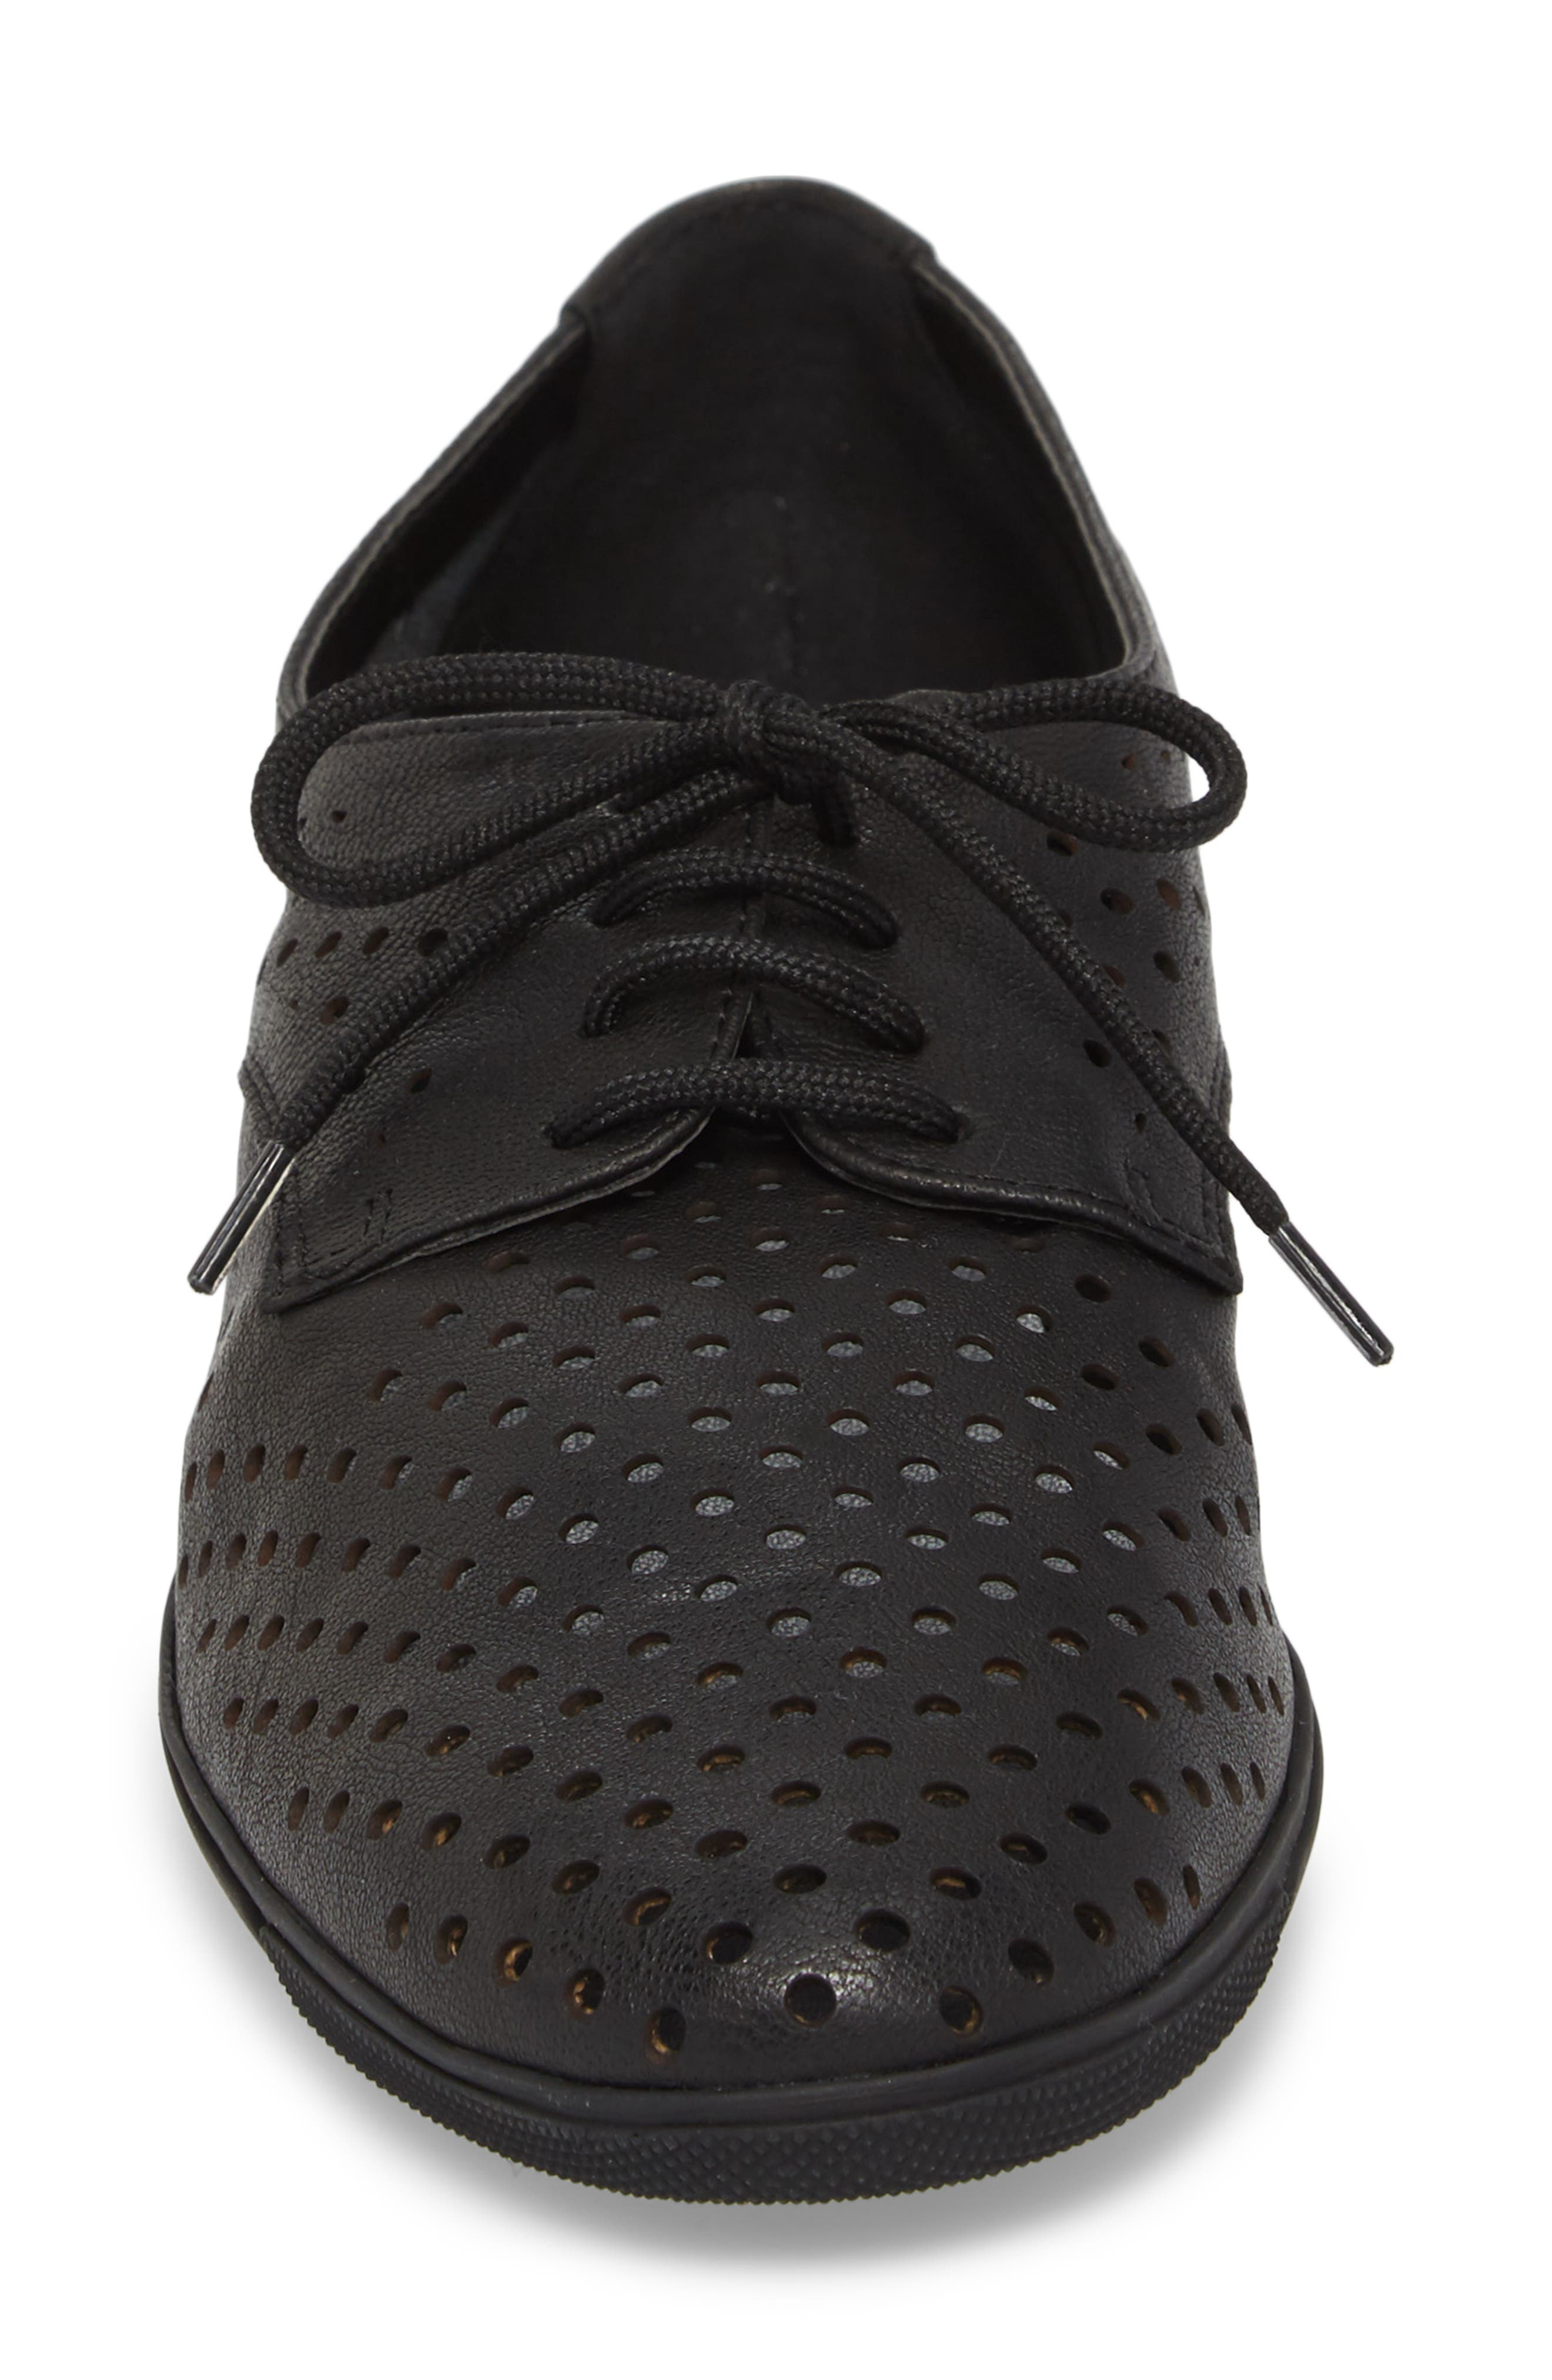 Dirce Perforated Oxford Flat,                             Alternate thumbnail 4, color,                             001